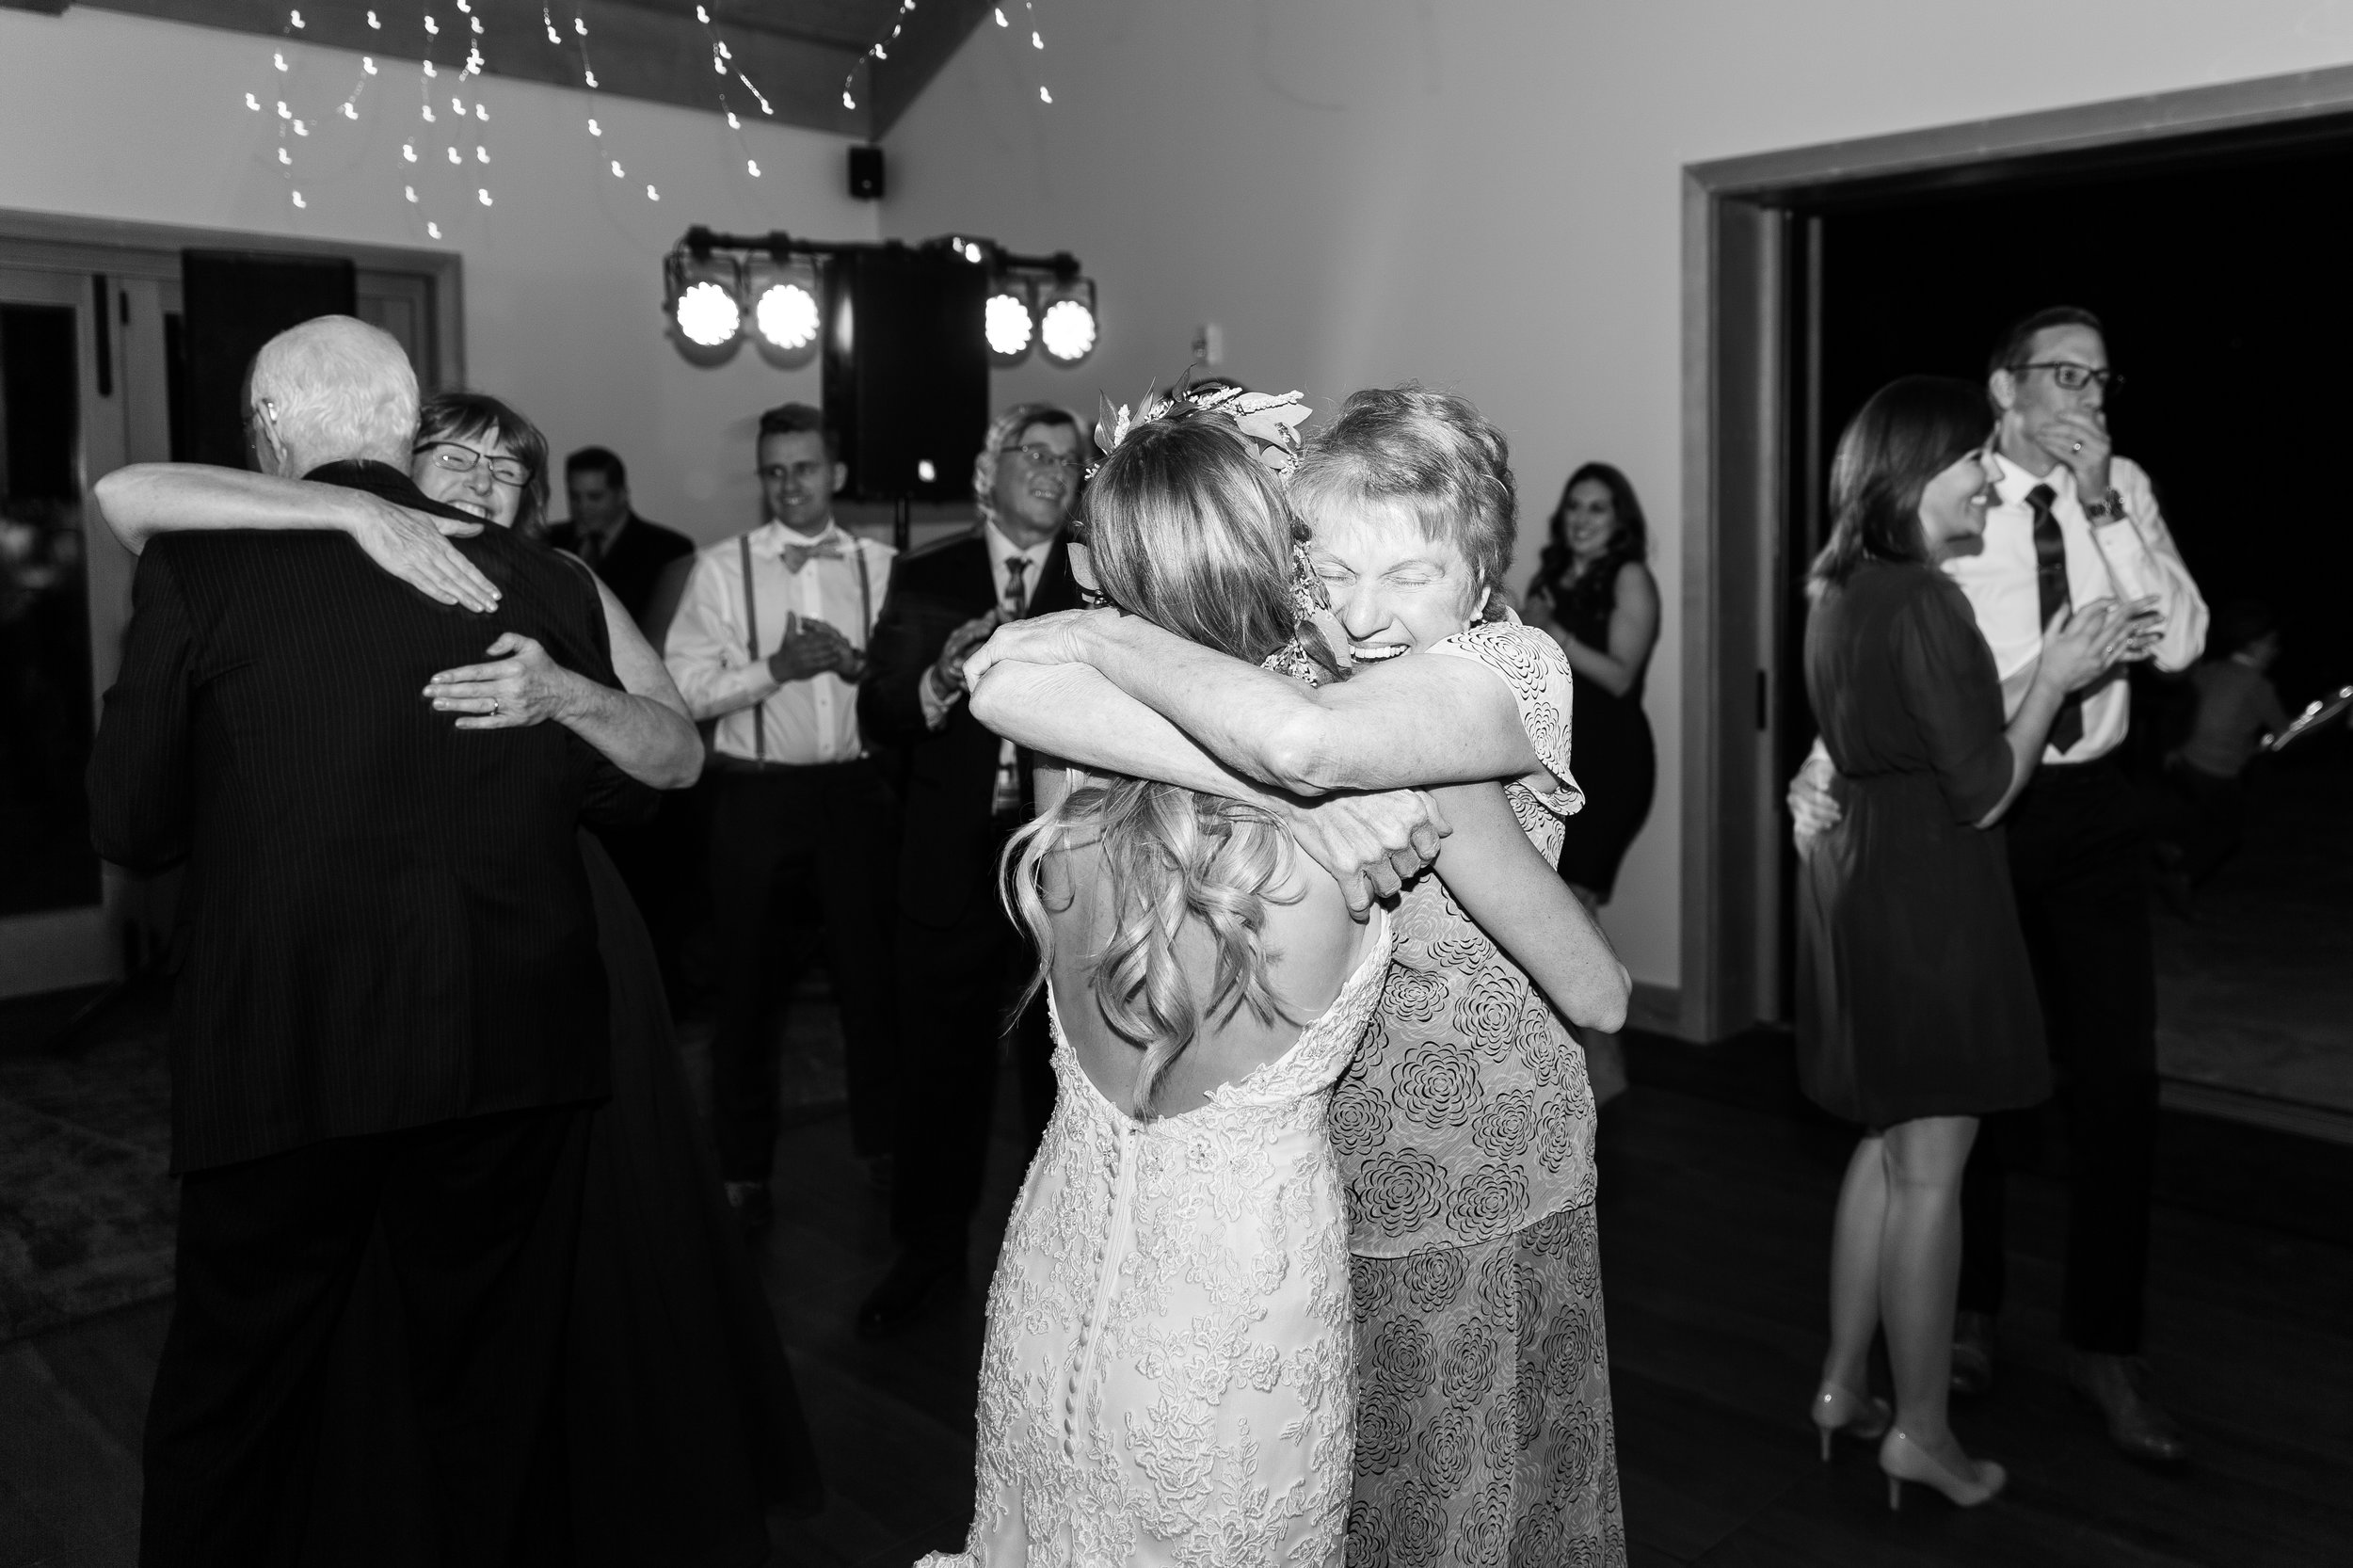 I absolutely adore this image of Julie and her grandmother on the dance floor. Her grandma's expression is one of infinite joy and it makes me happy when I look at it. Keep an eye out for important family members (like grandparents) and any interactions they may have with the couple. Don't watch them too closely though...that's creepy.